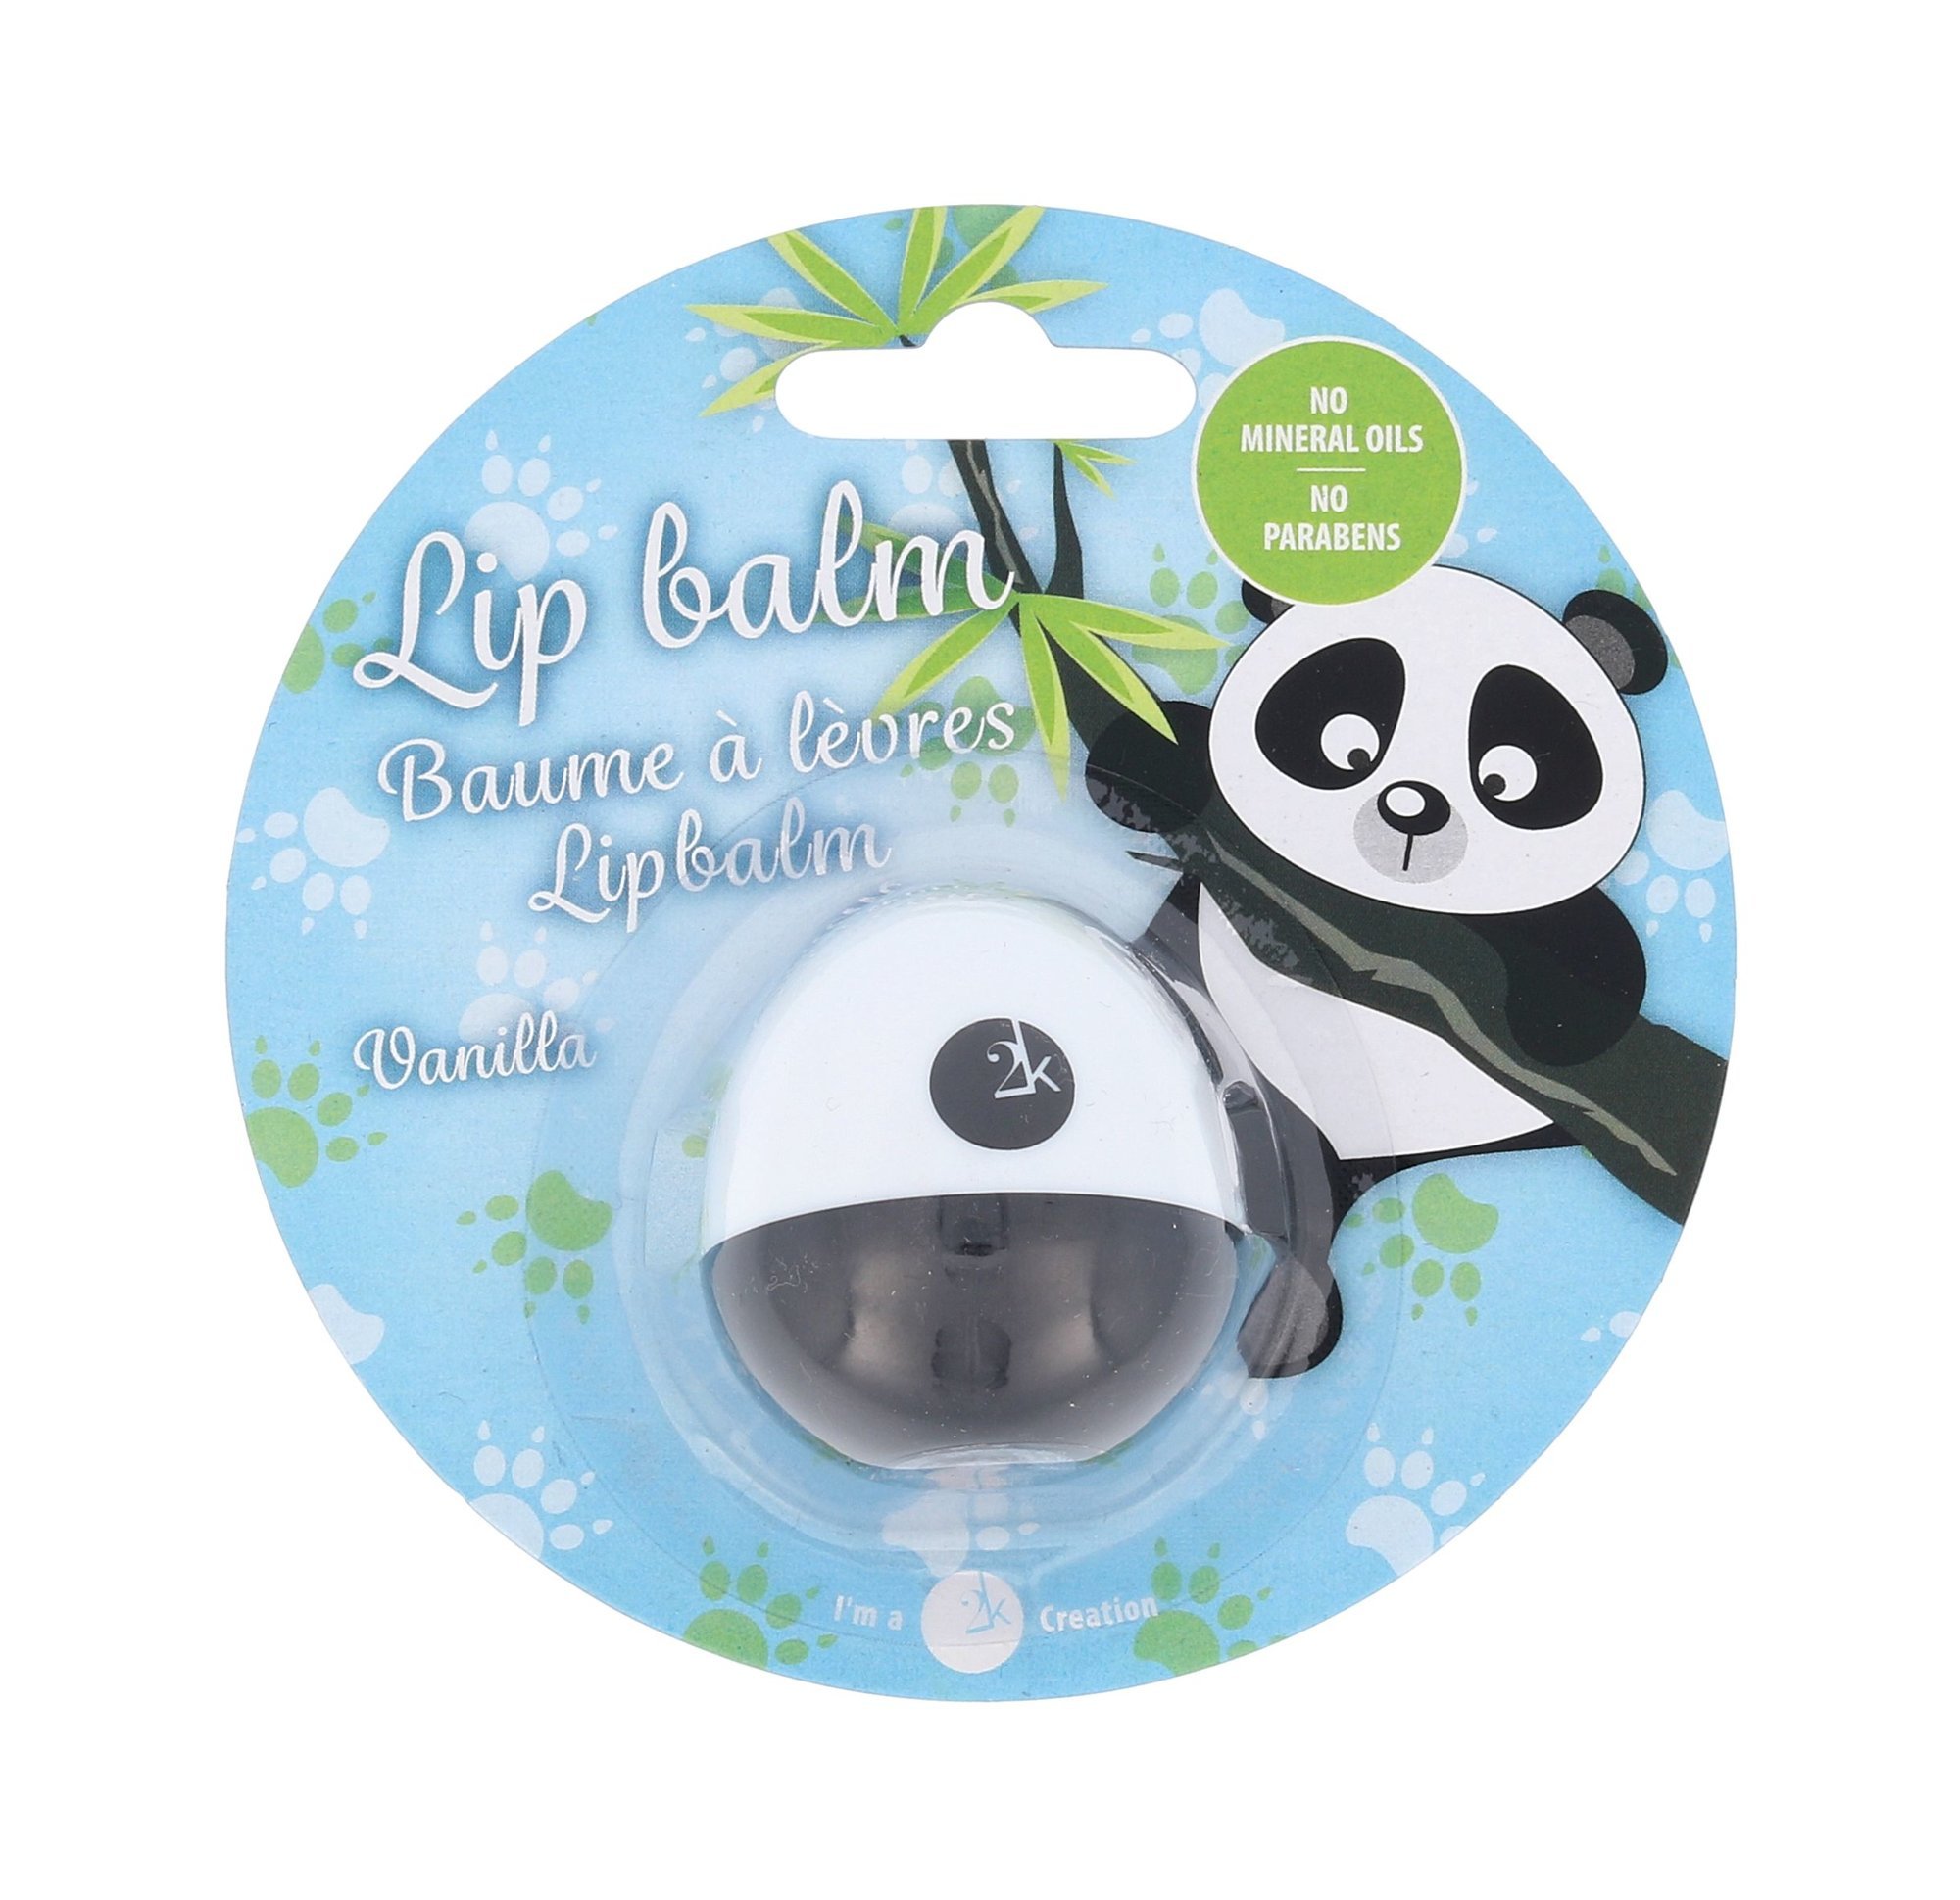 2K Animal Lip Balm Cosmetic 11ml Vanilla